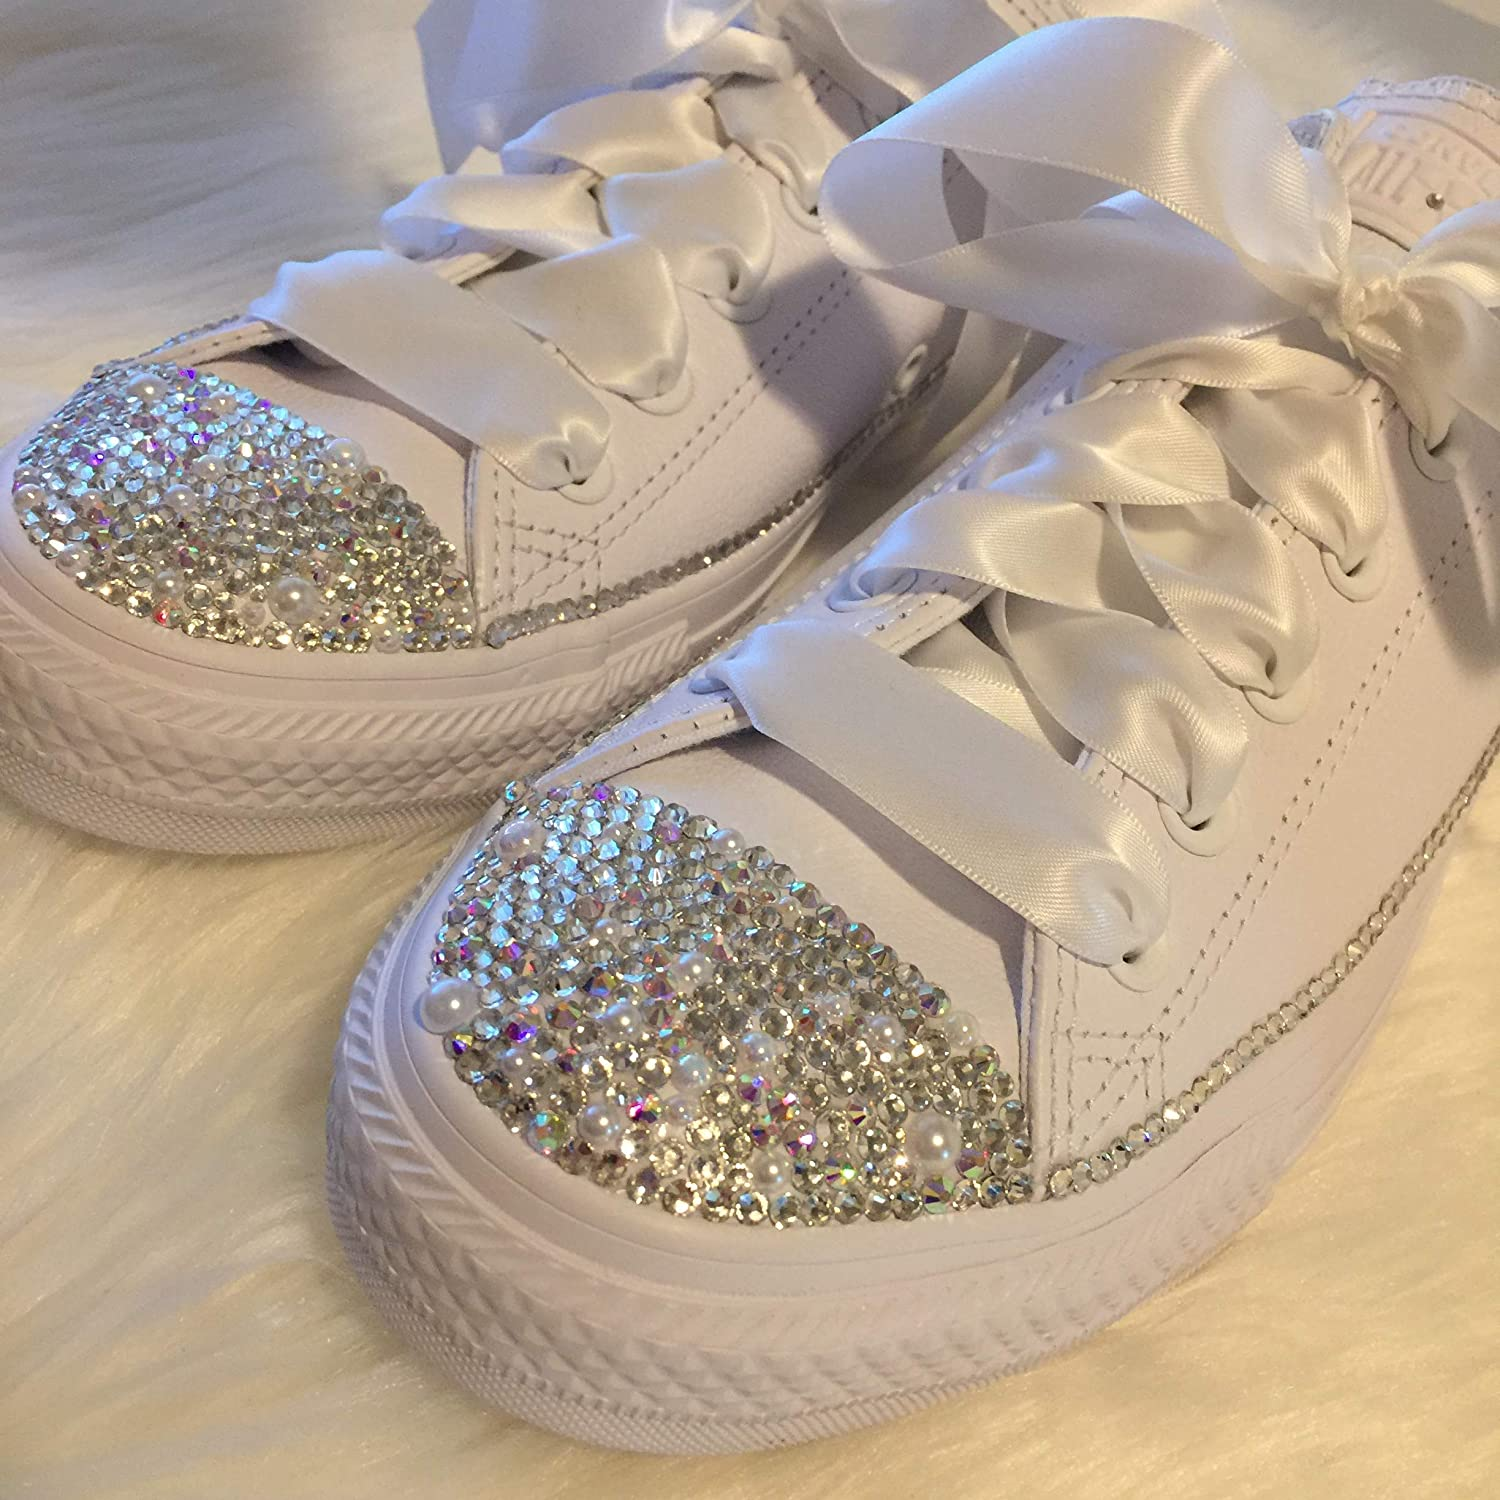 479db95623e6 Amazon.com  Bedazzled Wedding Shoes Swarovski Bridal All Star Chucks  Sneakers for the BRIDE All White Custom with Pearls and Bling for  Quinceañera or Prom  ...